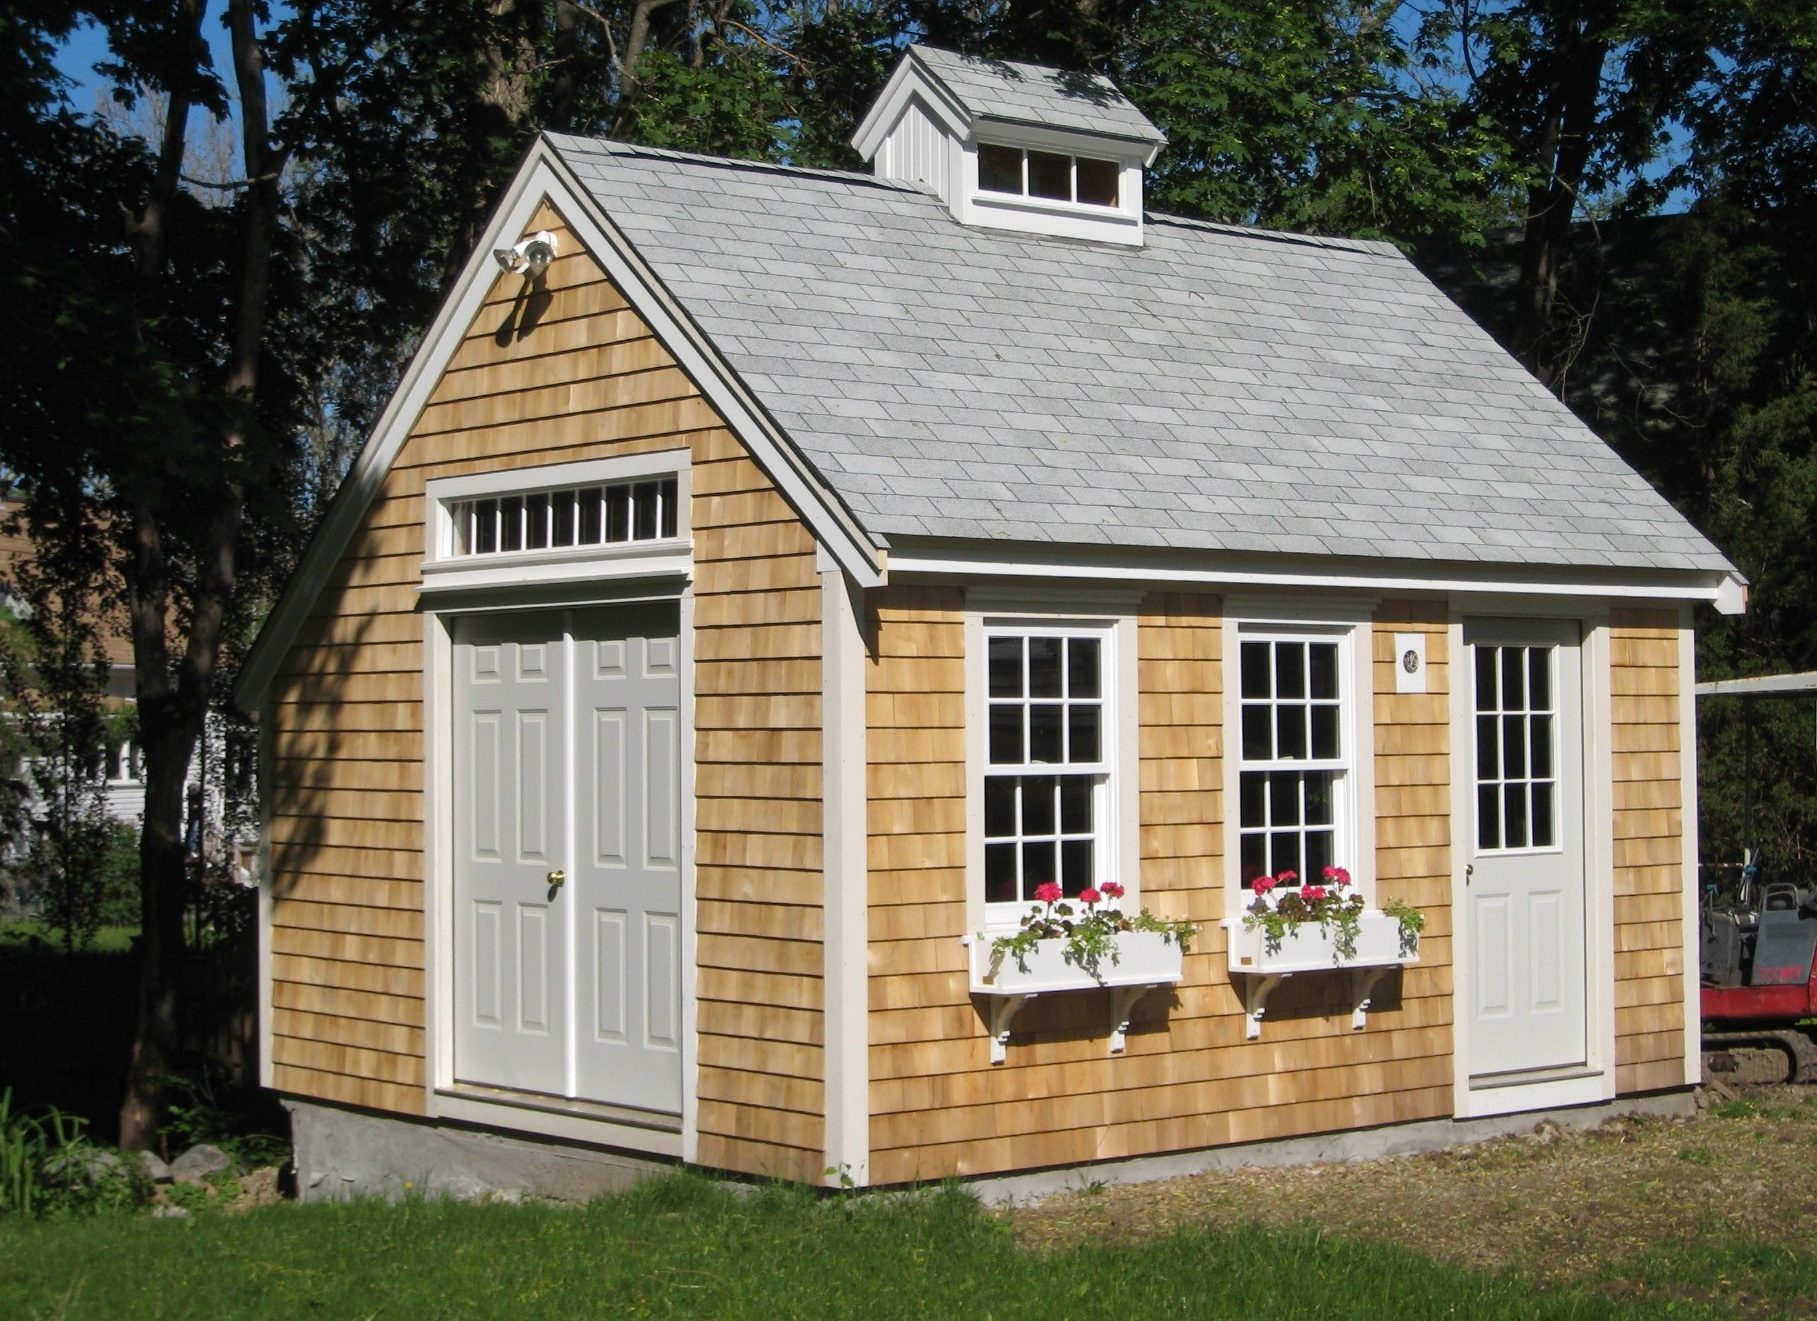 Fairytale backyards 30 magical garden sheds for Small outdoor sheds for sale